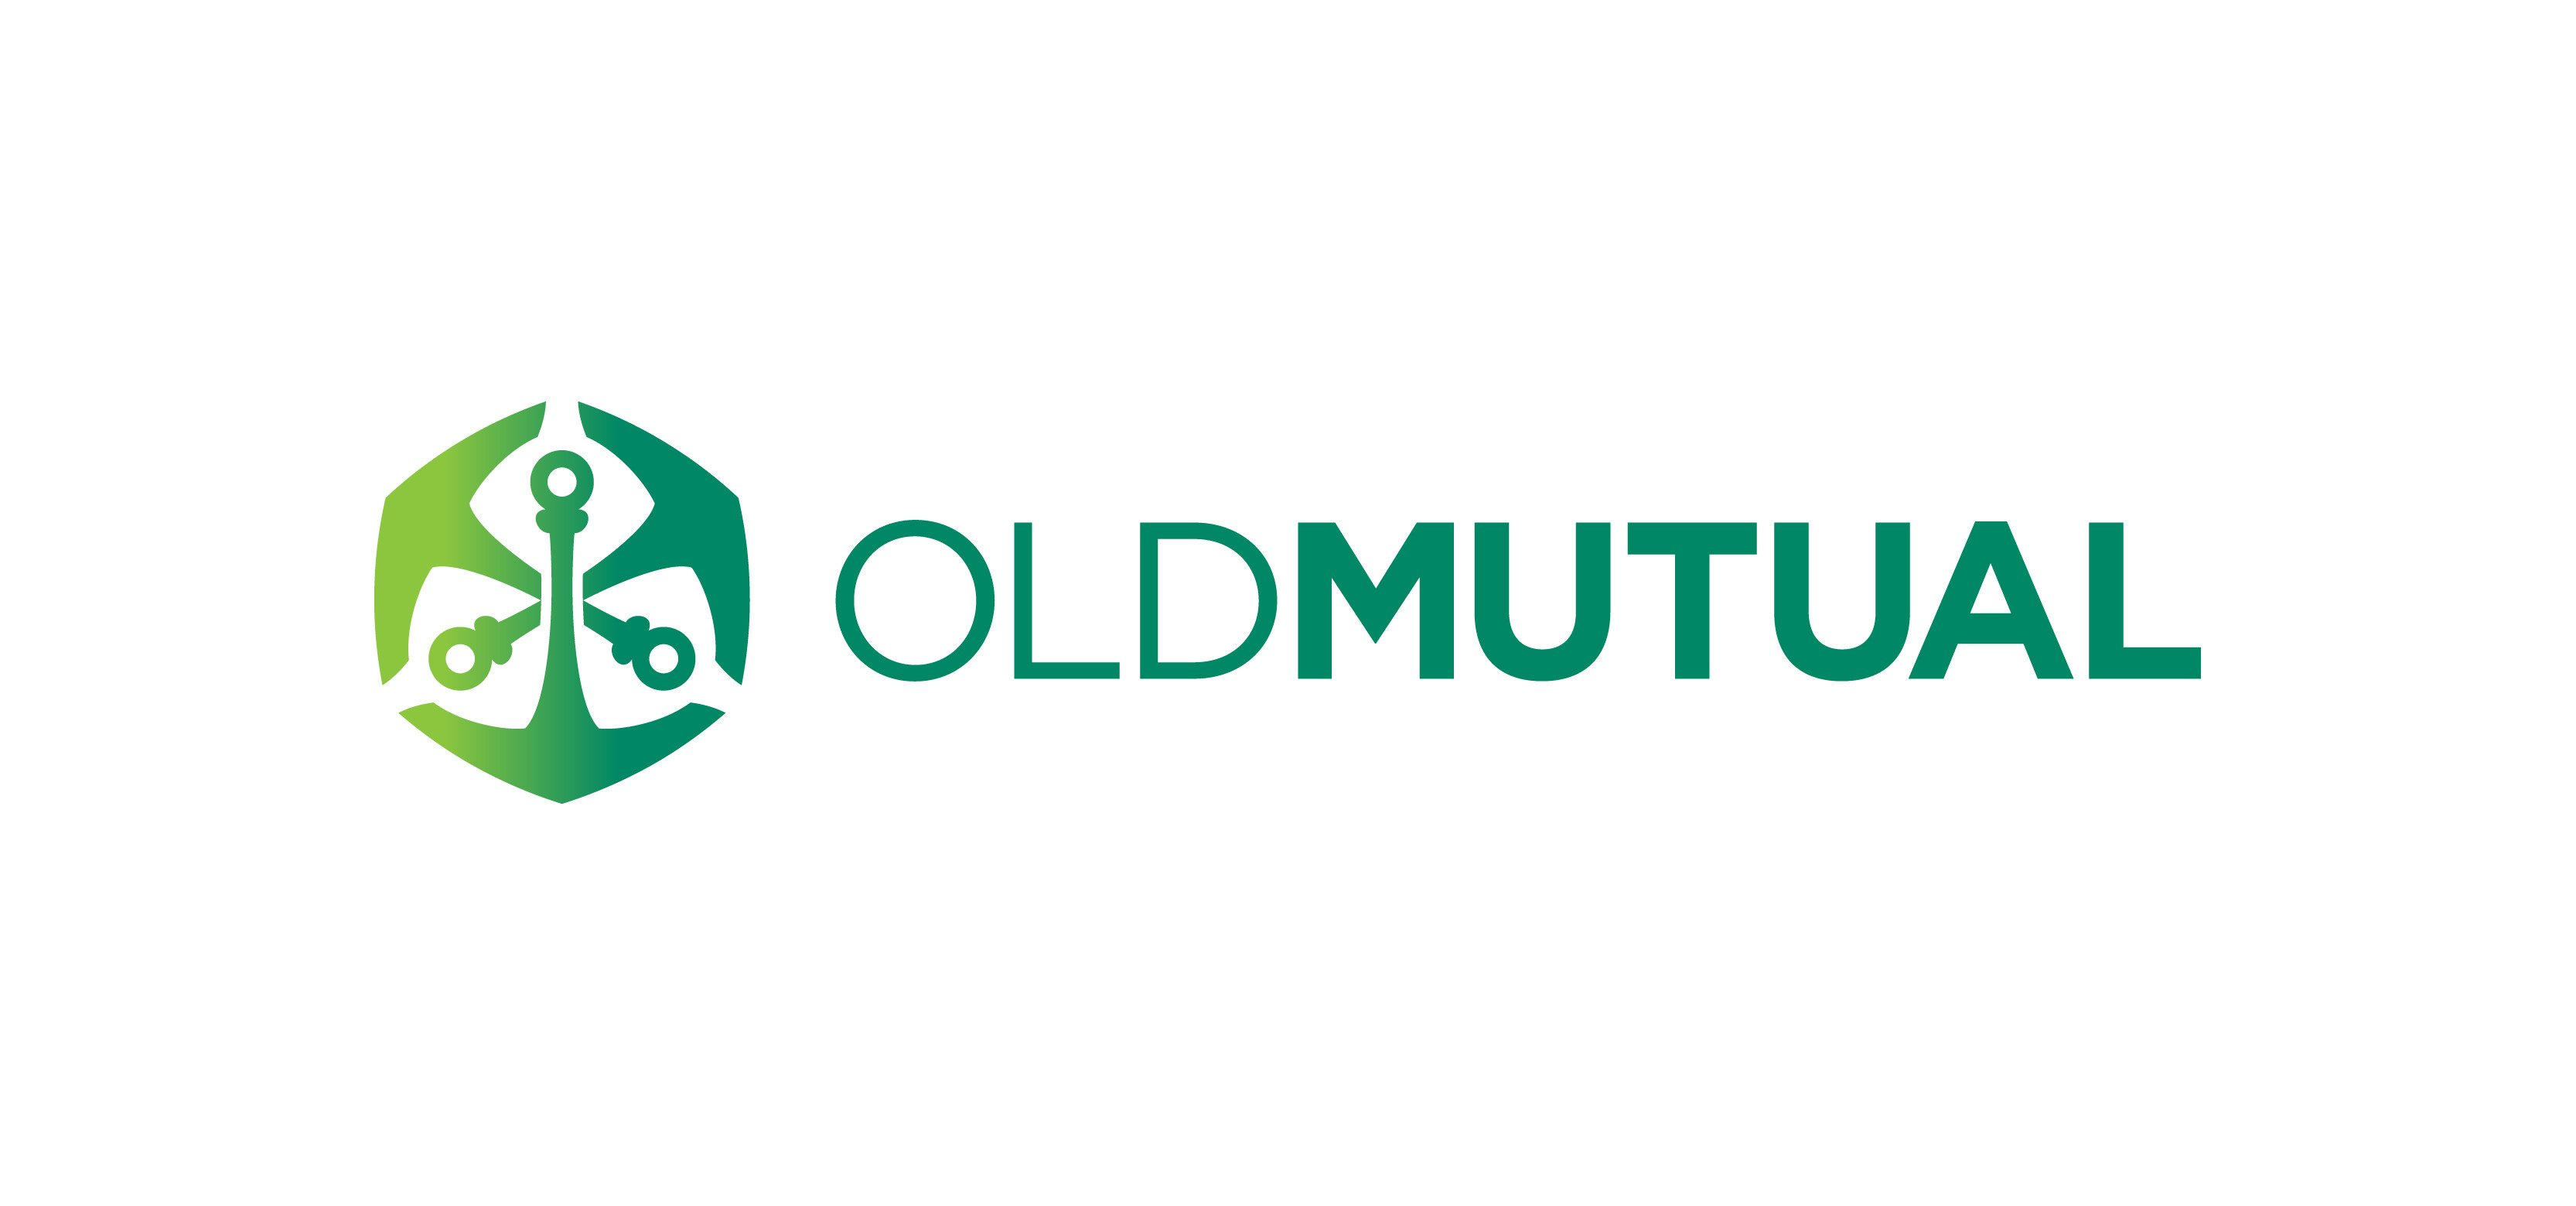 old mutual bursary application form 2019 pdf